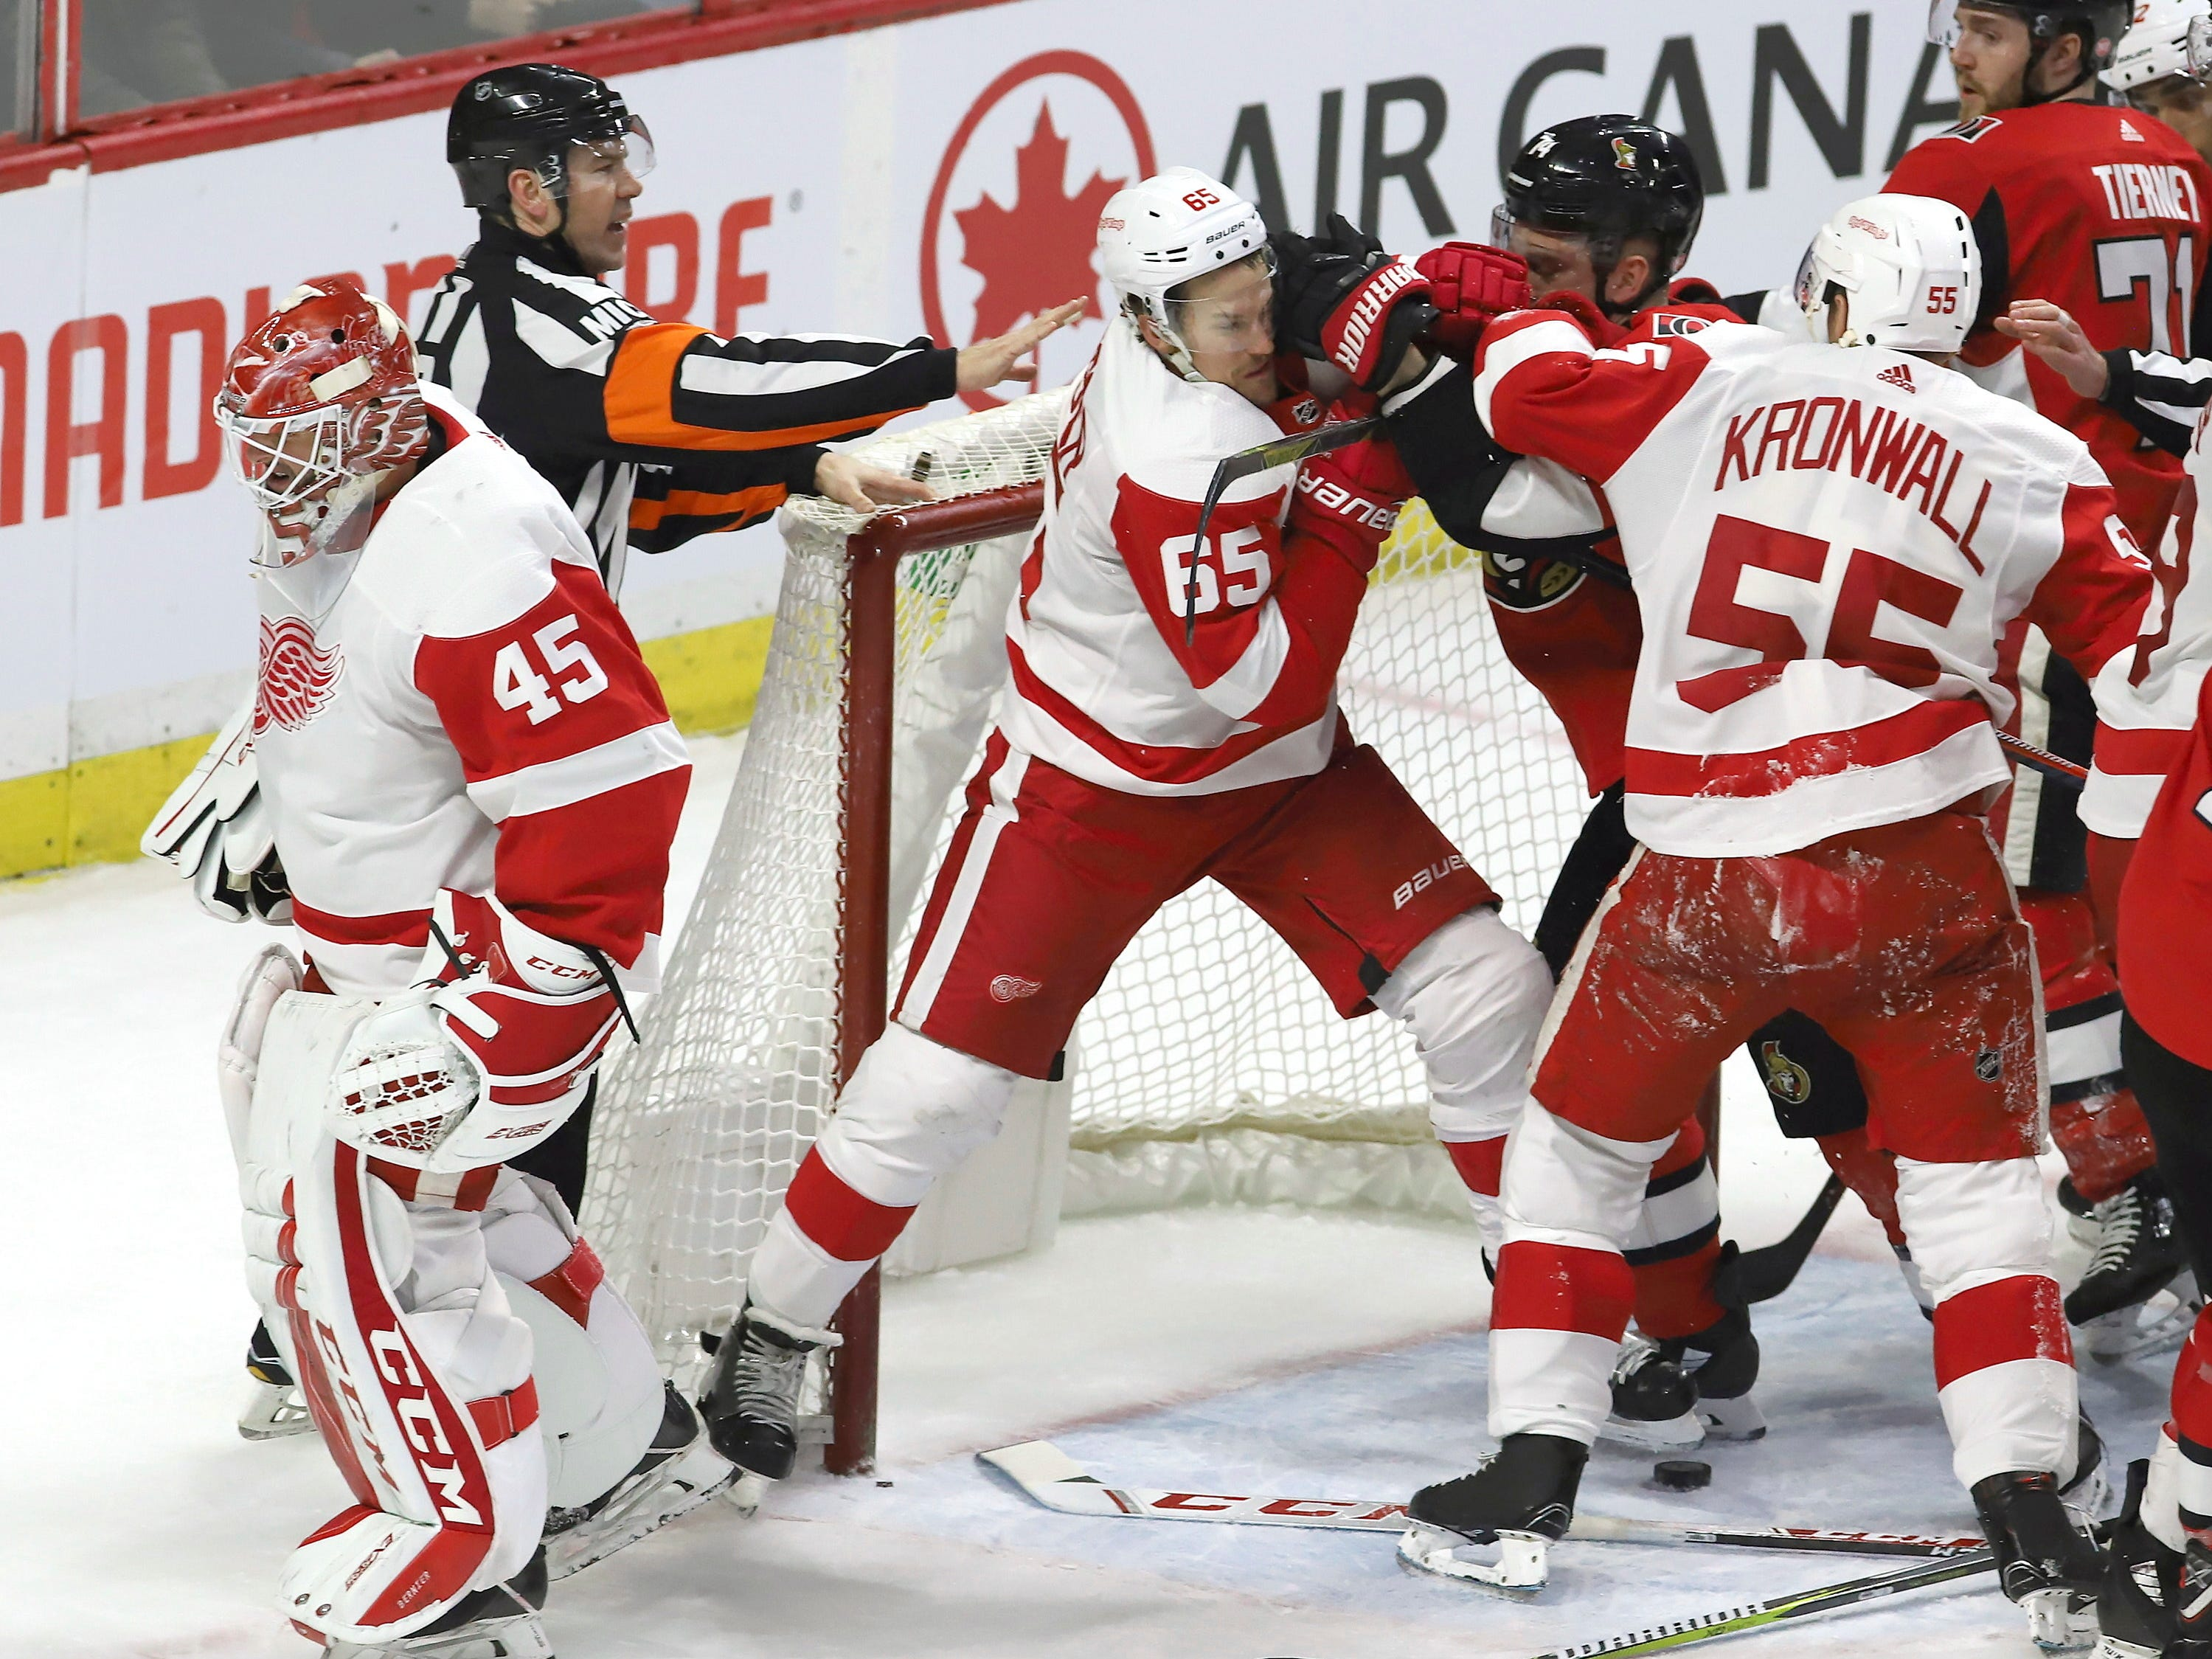 Detroit Red Wings goaltender Jonathan Bernier (45) skates away from a skirmish in front of his net between teammate Danny DeKeyser (65) and Ottawa Senators' Mark Borowiecki (74) during the third period.